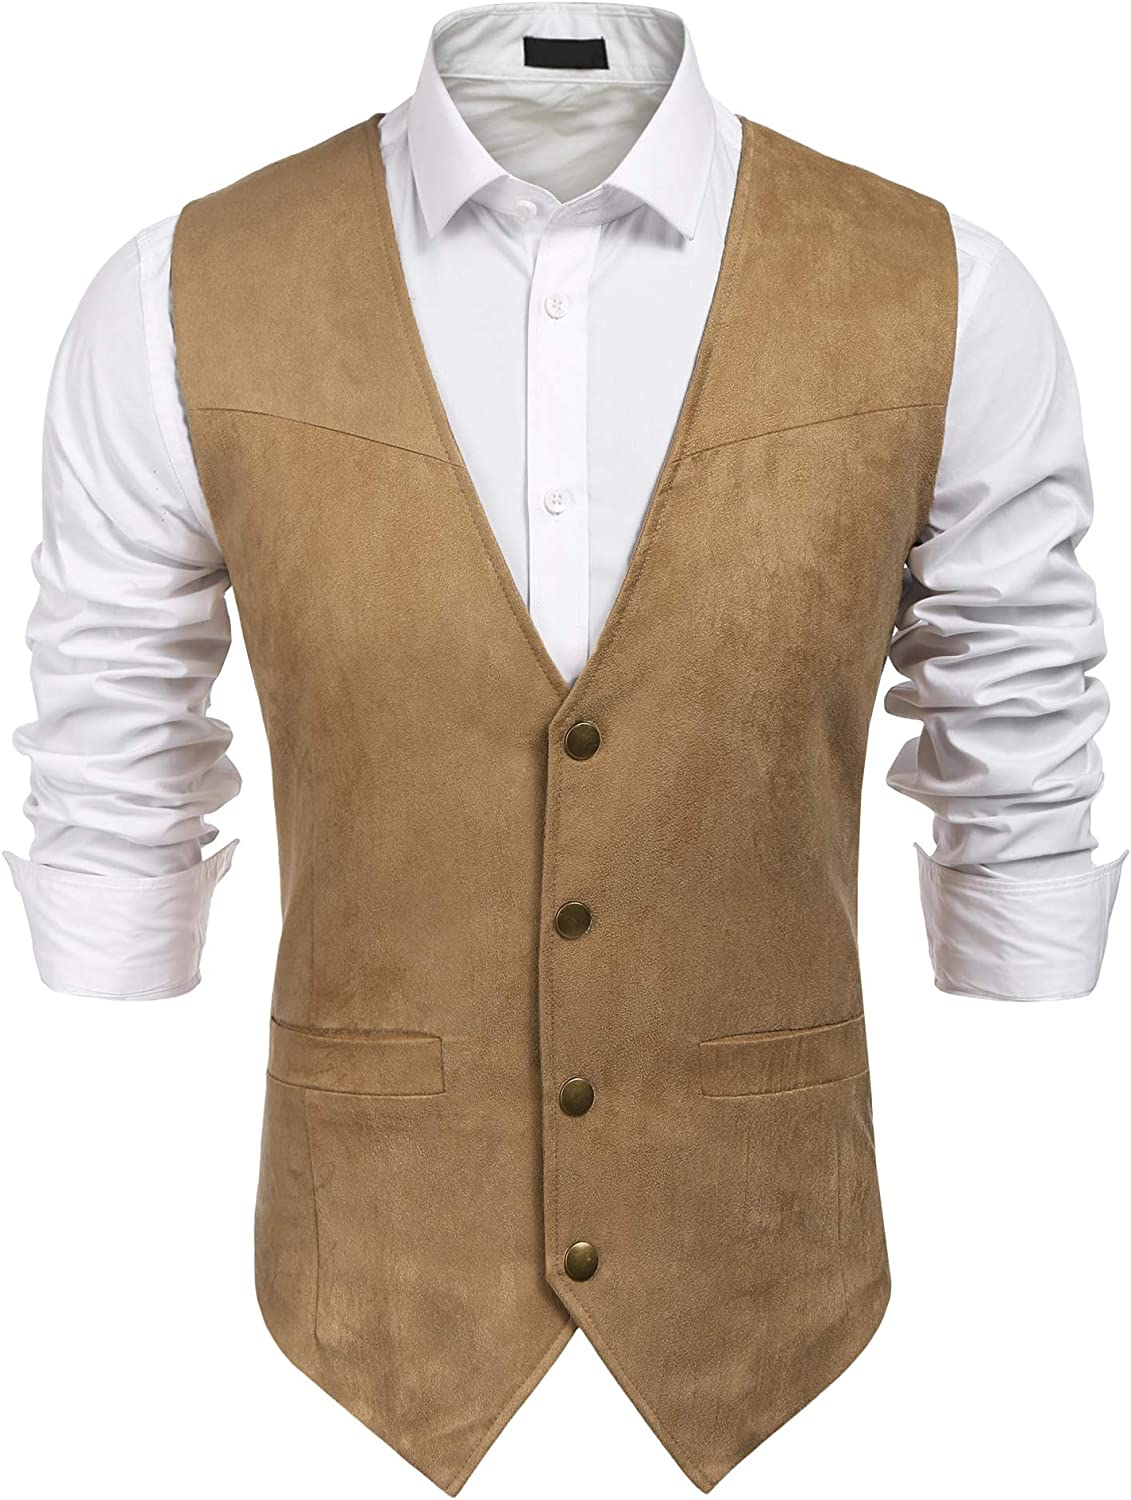 JINIDU Men's Casual Suede Leather Vest Jacket Slim Fit Dress Vest Waistcoat